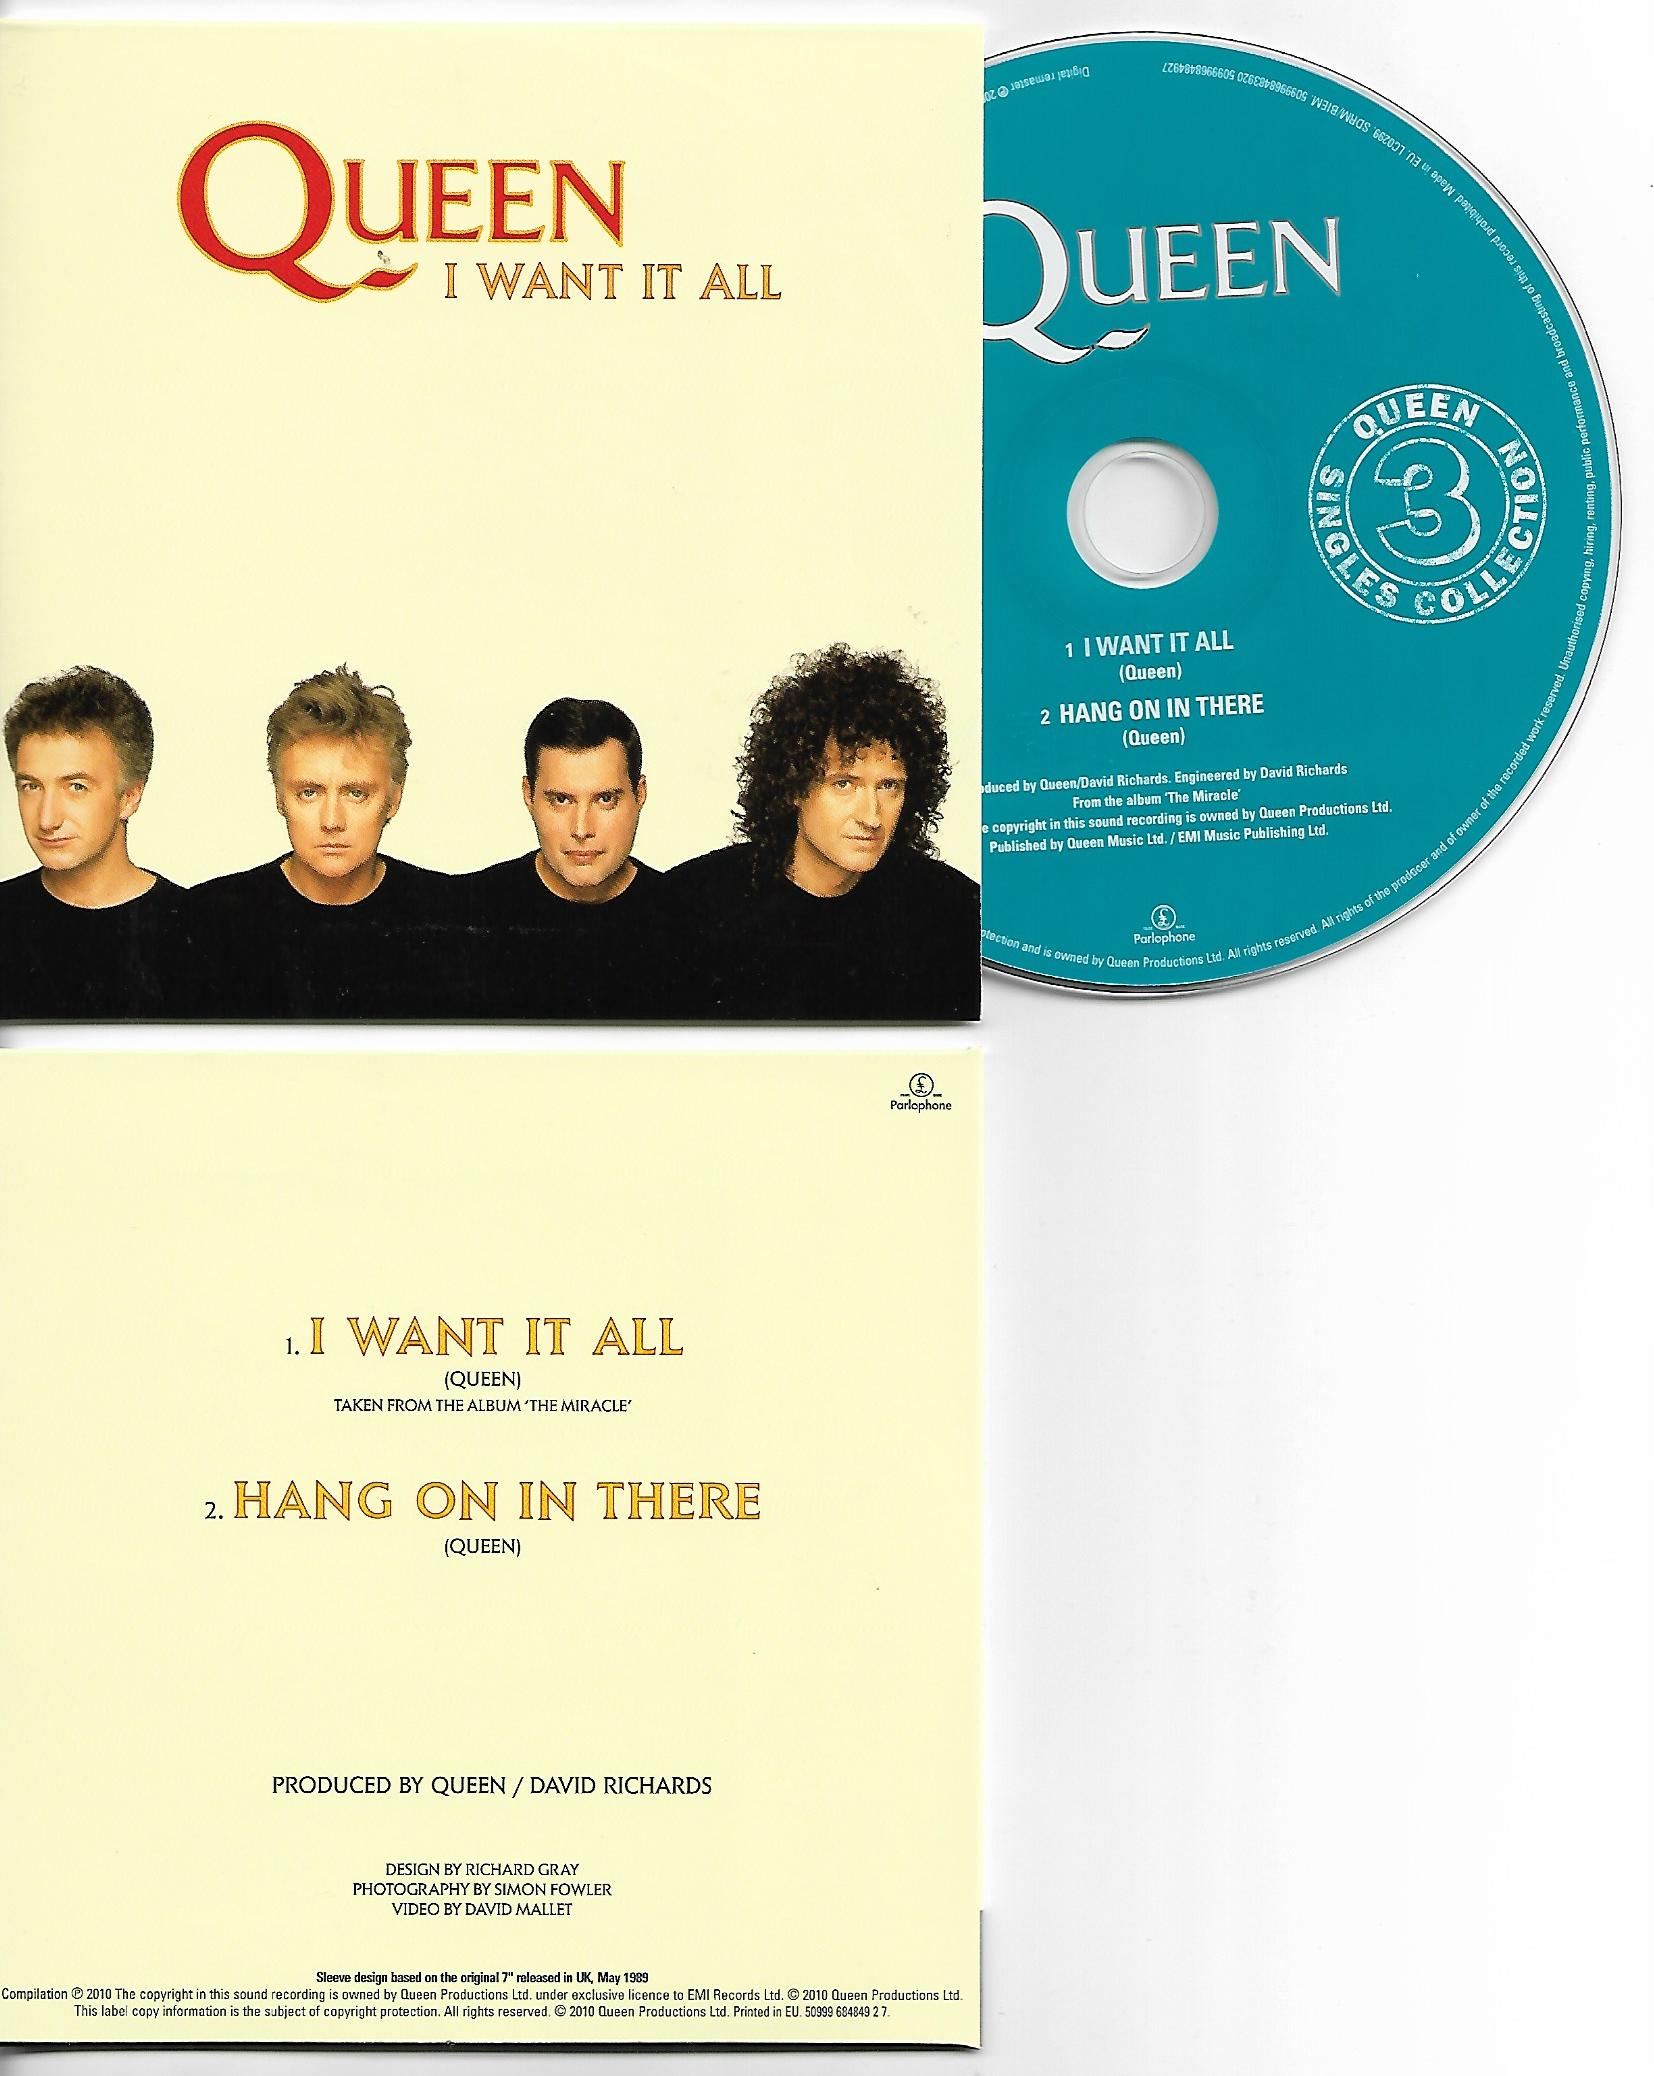 QUEEN - I Want It All + Uk + 2-track Card Sleeve - Reedition Du 45t Original - - Reissue Of Original 7""